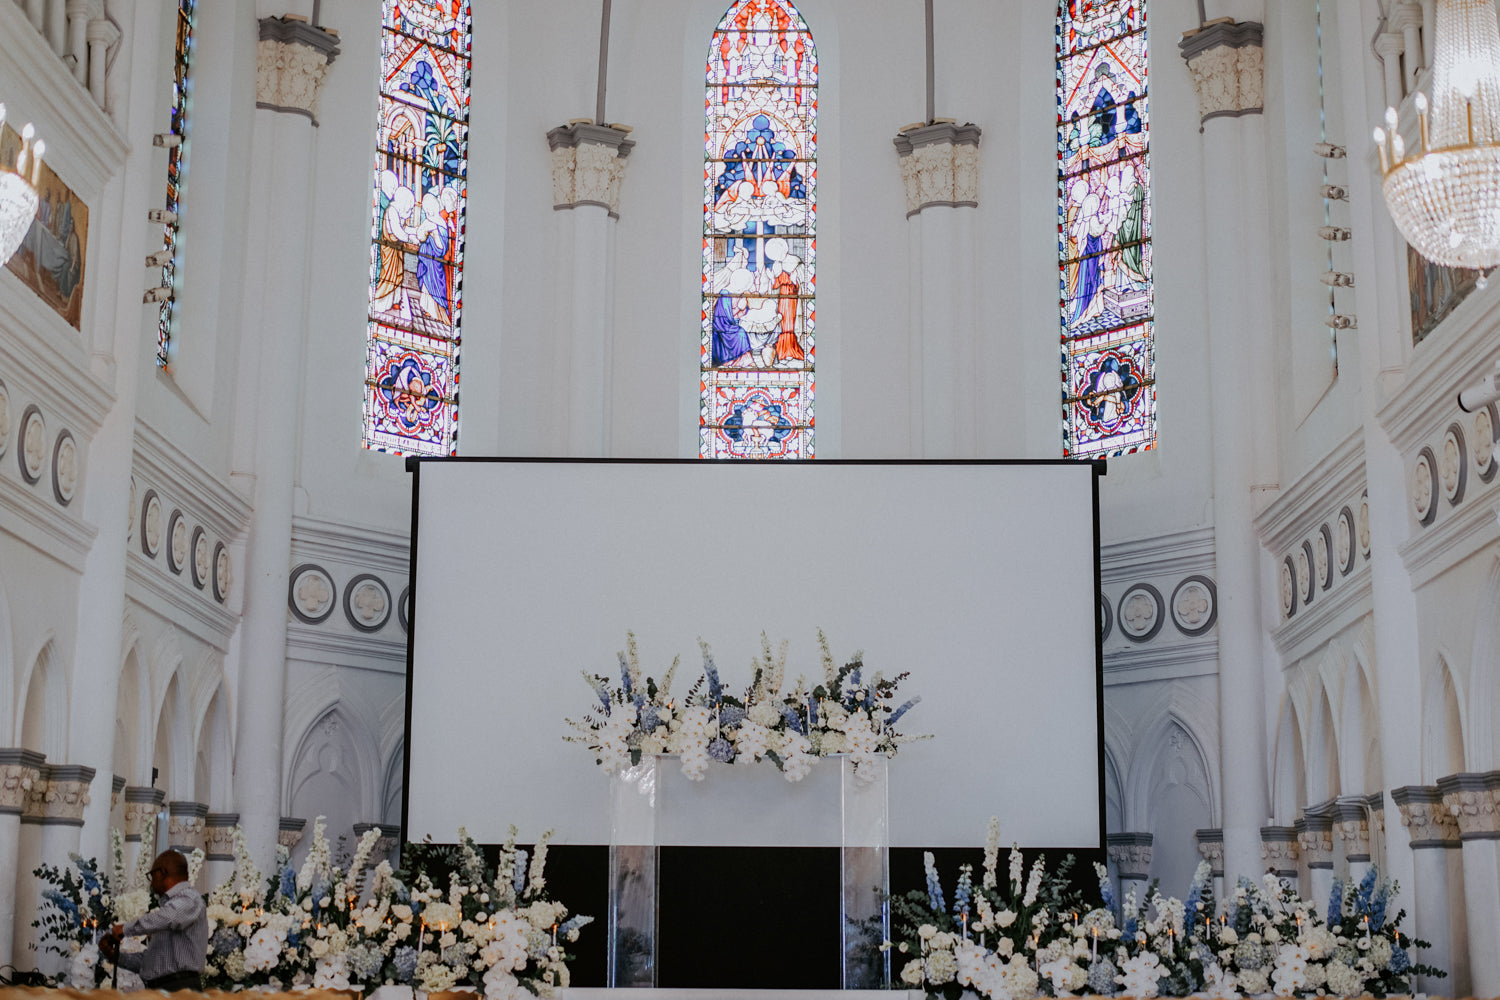 White screen in a CHIJMES chapel hall with stained glass and white, blue flower arrangements